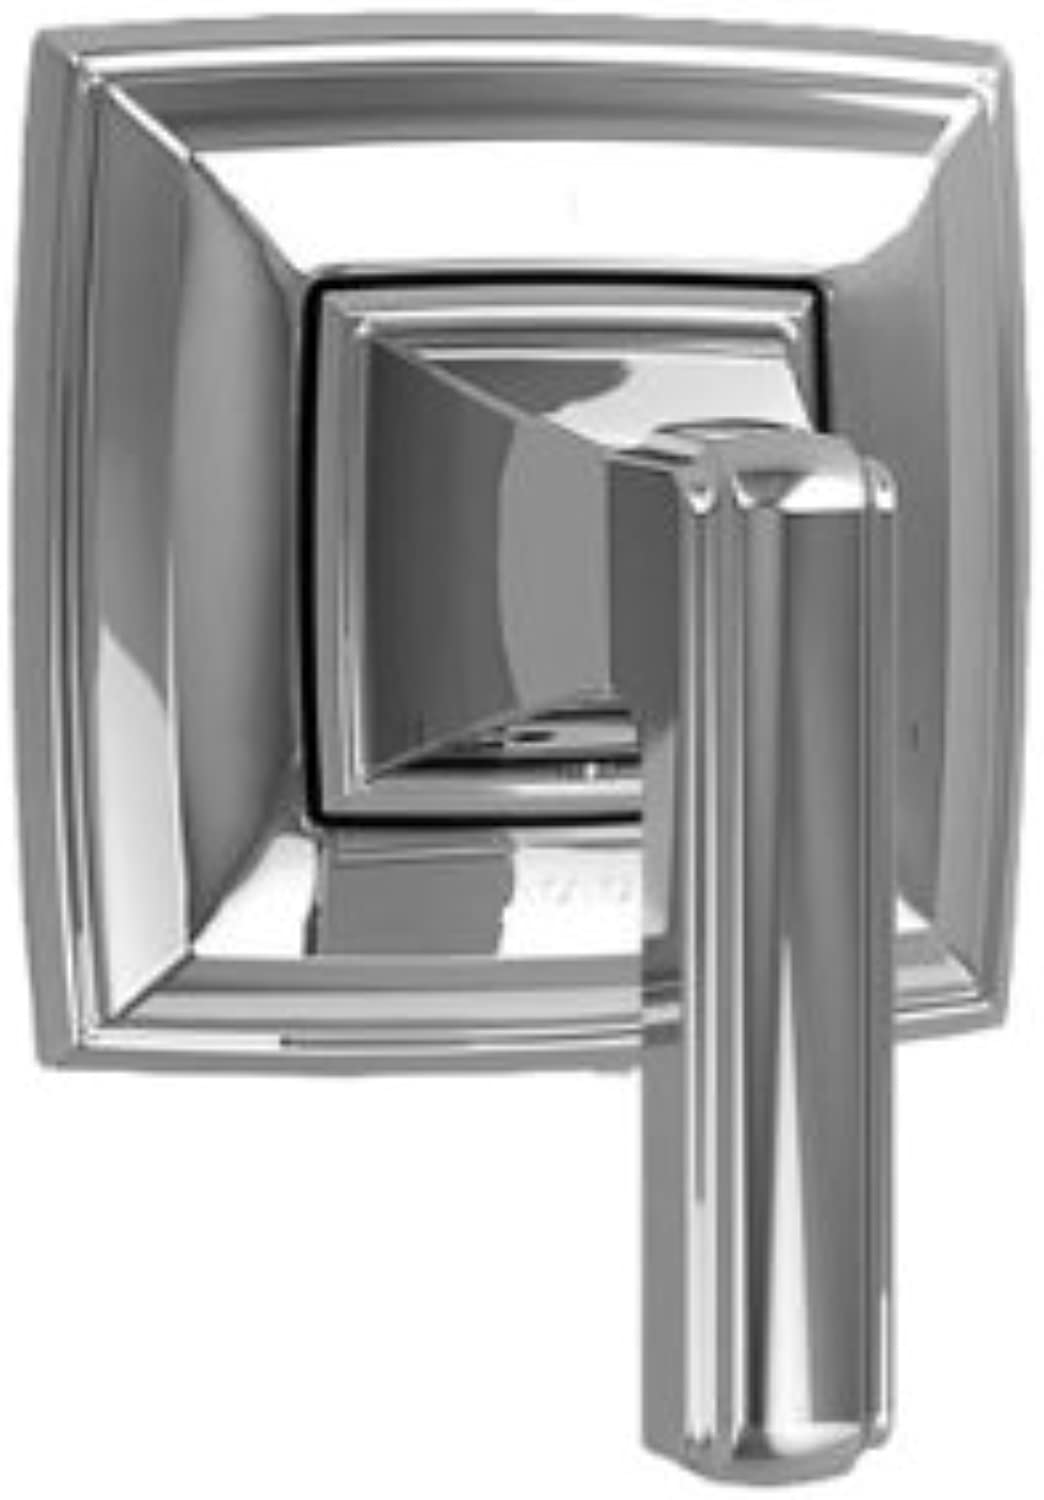 Toto TS221XW PN Connelly Three-Way Shower DiGrüner Trim, Polished Nickel Polished Nickel by Toto